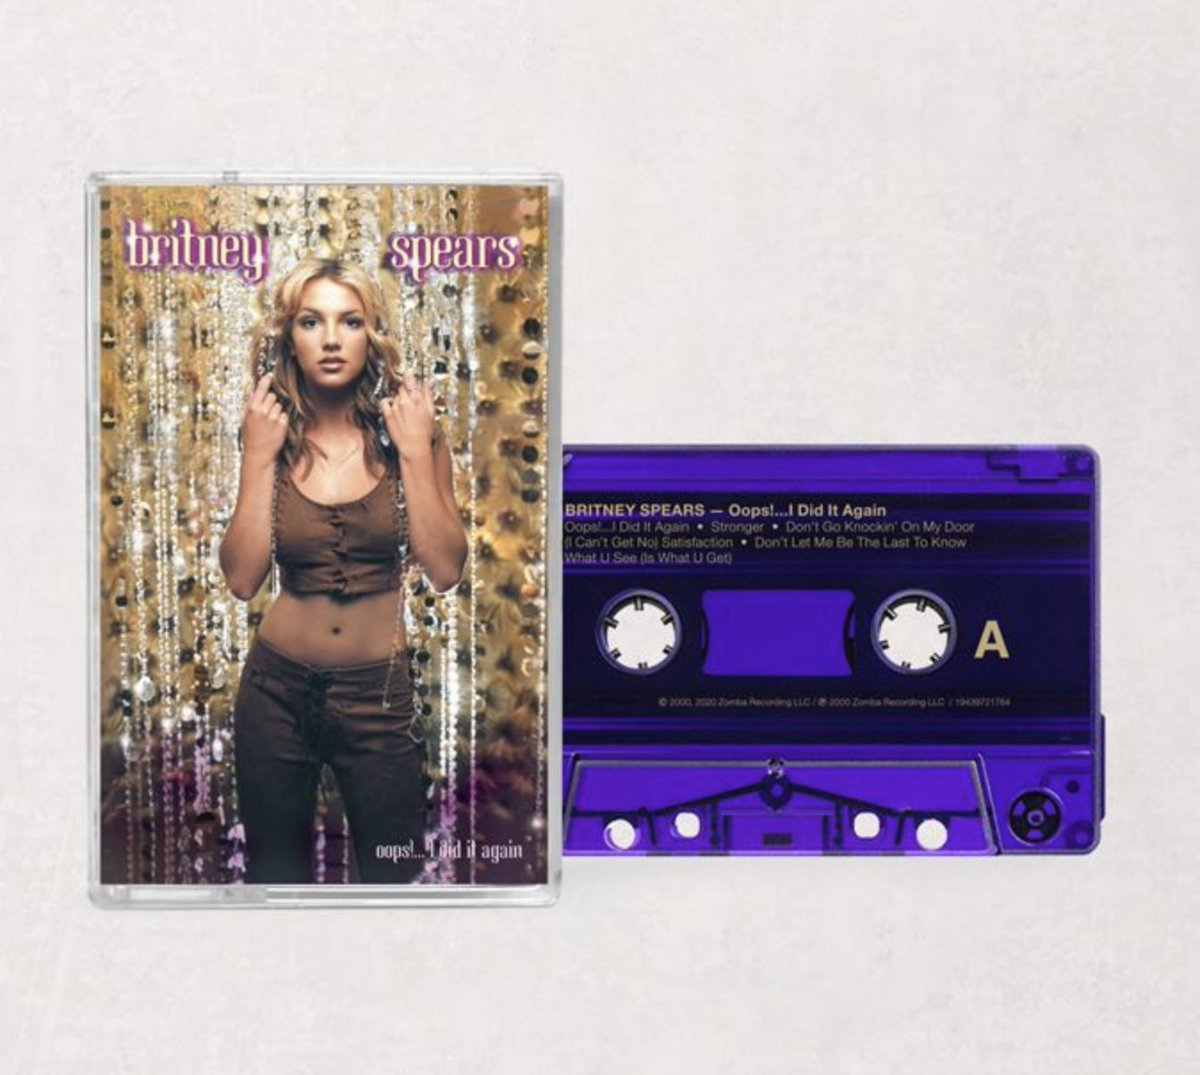 Urban Outfitters On Twitter She S Legendary Preorder Britneyspears Iconic Oops I Did It Again On Exclusive Clear Vinyl With Purple And Gold Splatter And Exclusive Purple Cassette Vinyl Https T Co Lpyfjyxk1x Cassette Https T Co